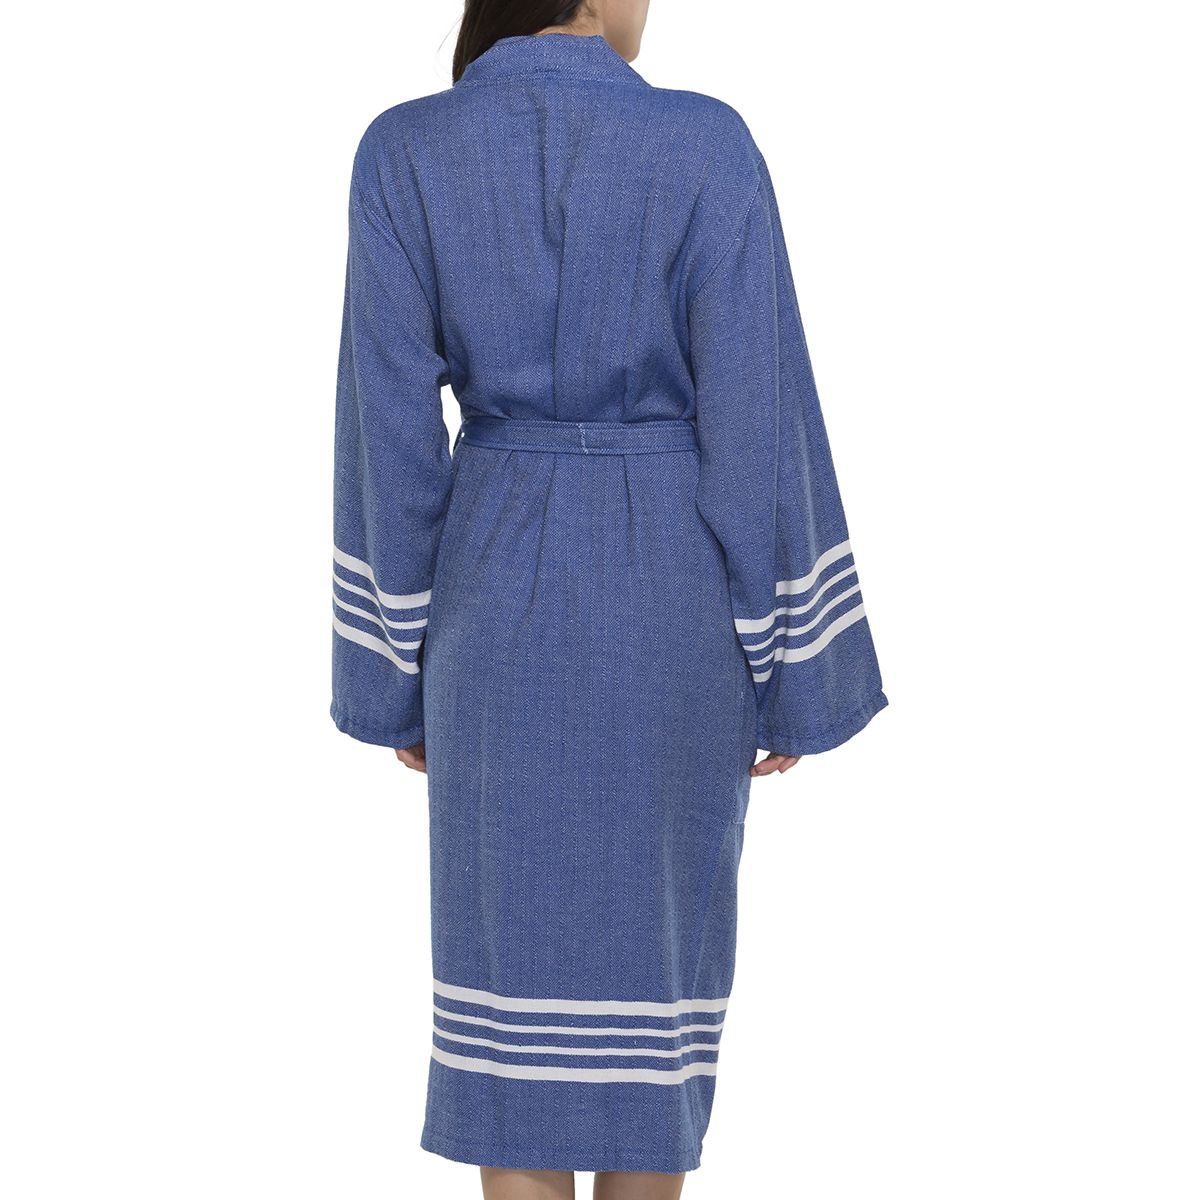 Bathrobe Sultan kimono collar - Royal Blue